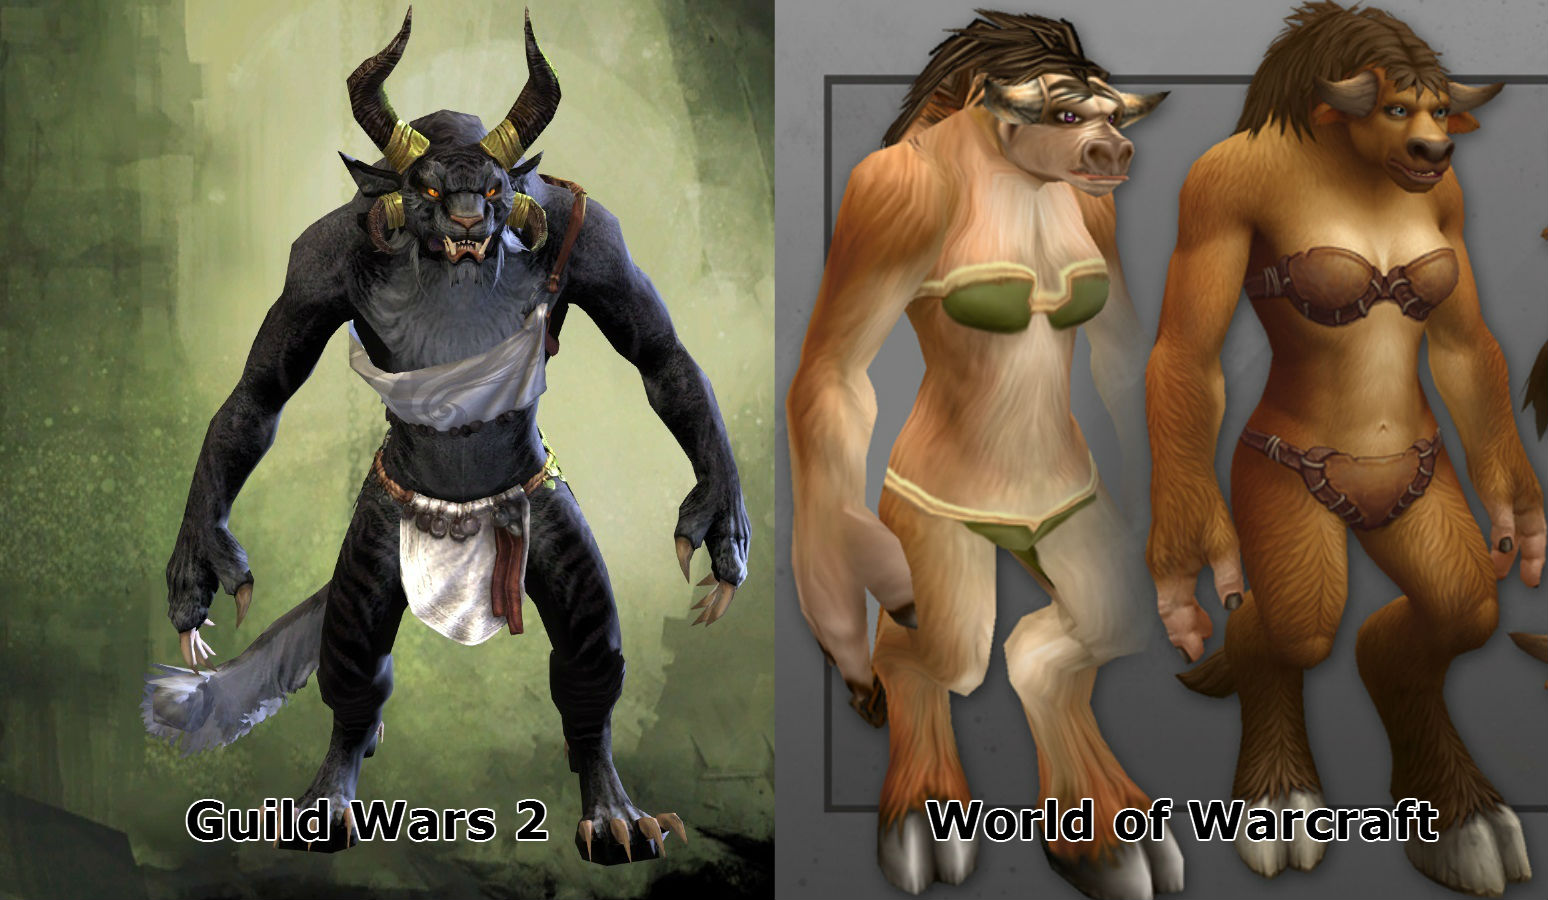 World of warcraft troll and orc porn nude scenes